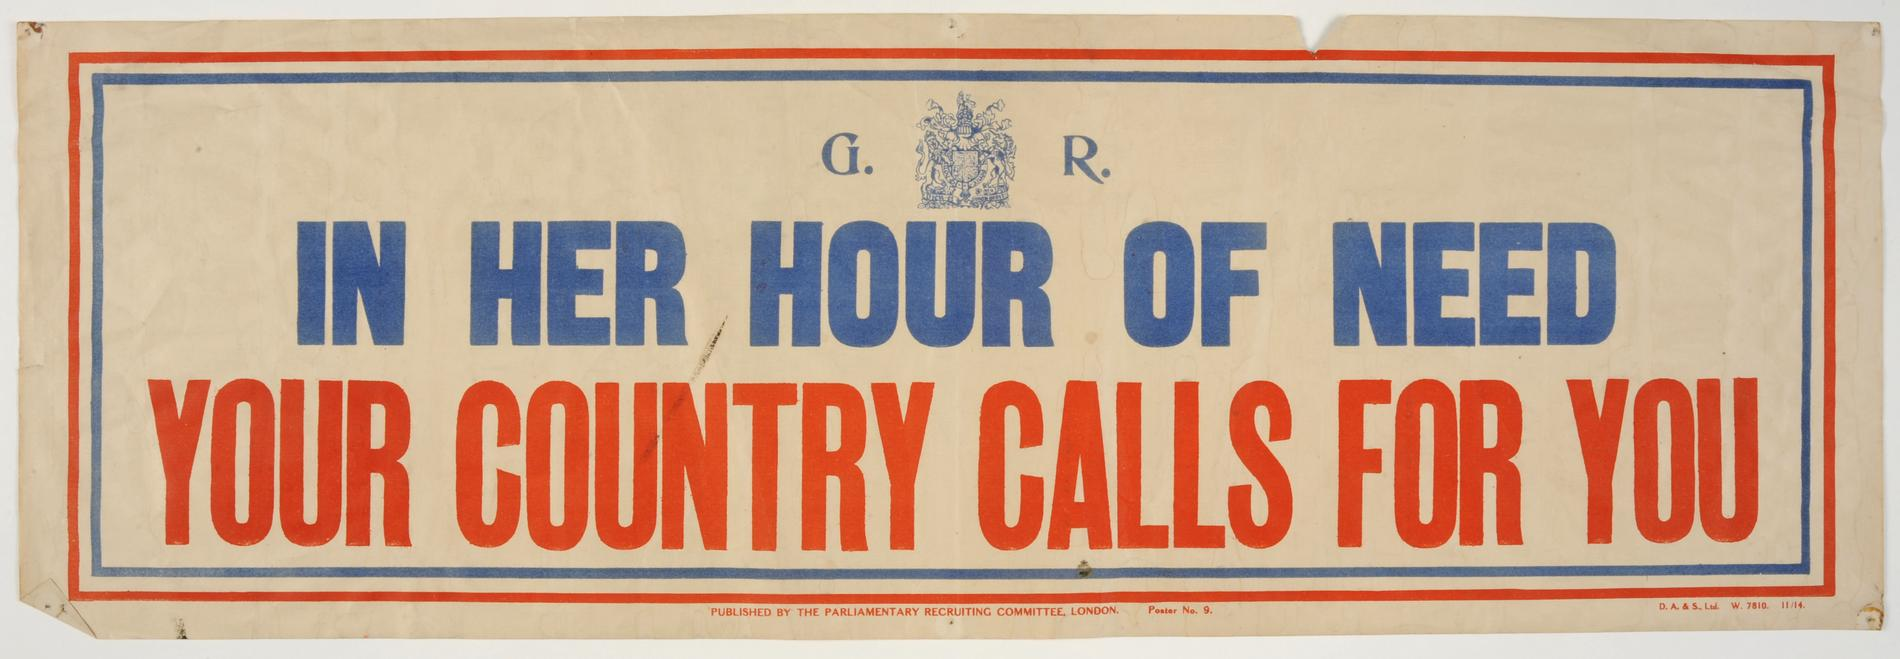 'In Her Hour of Need Your Country Calls for You' (Poster)